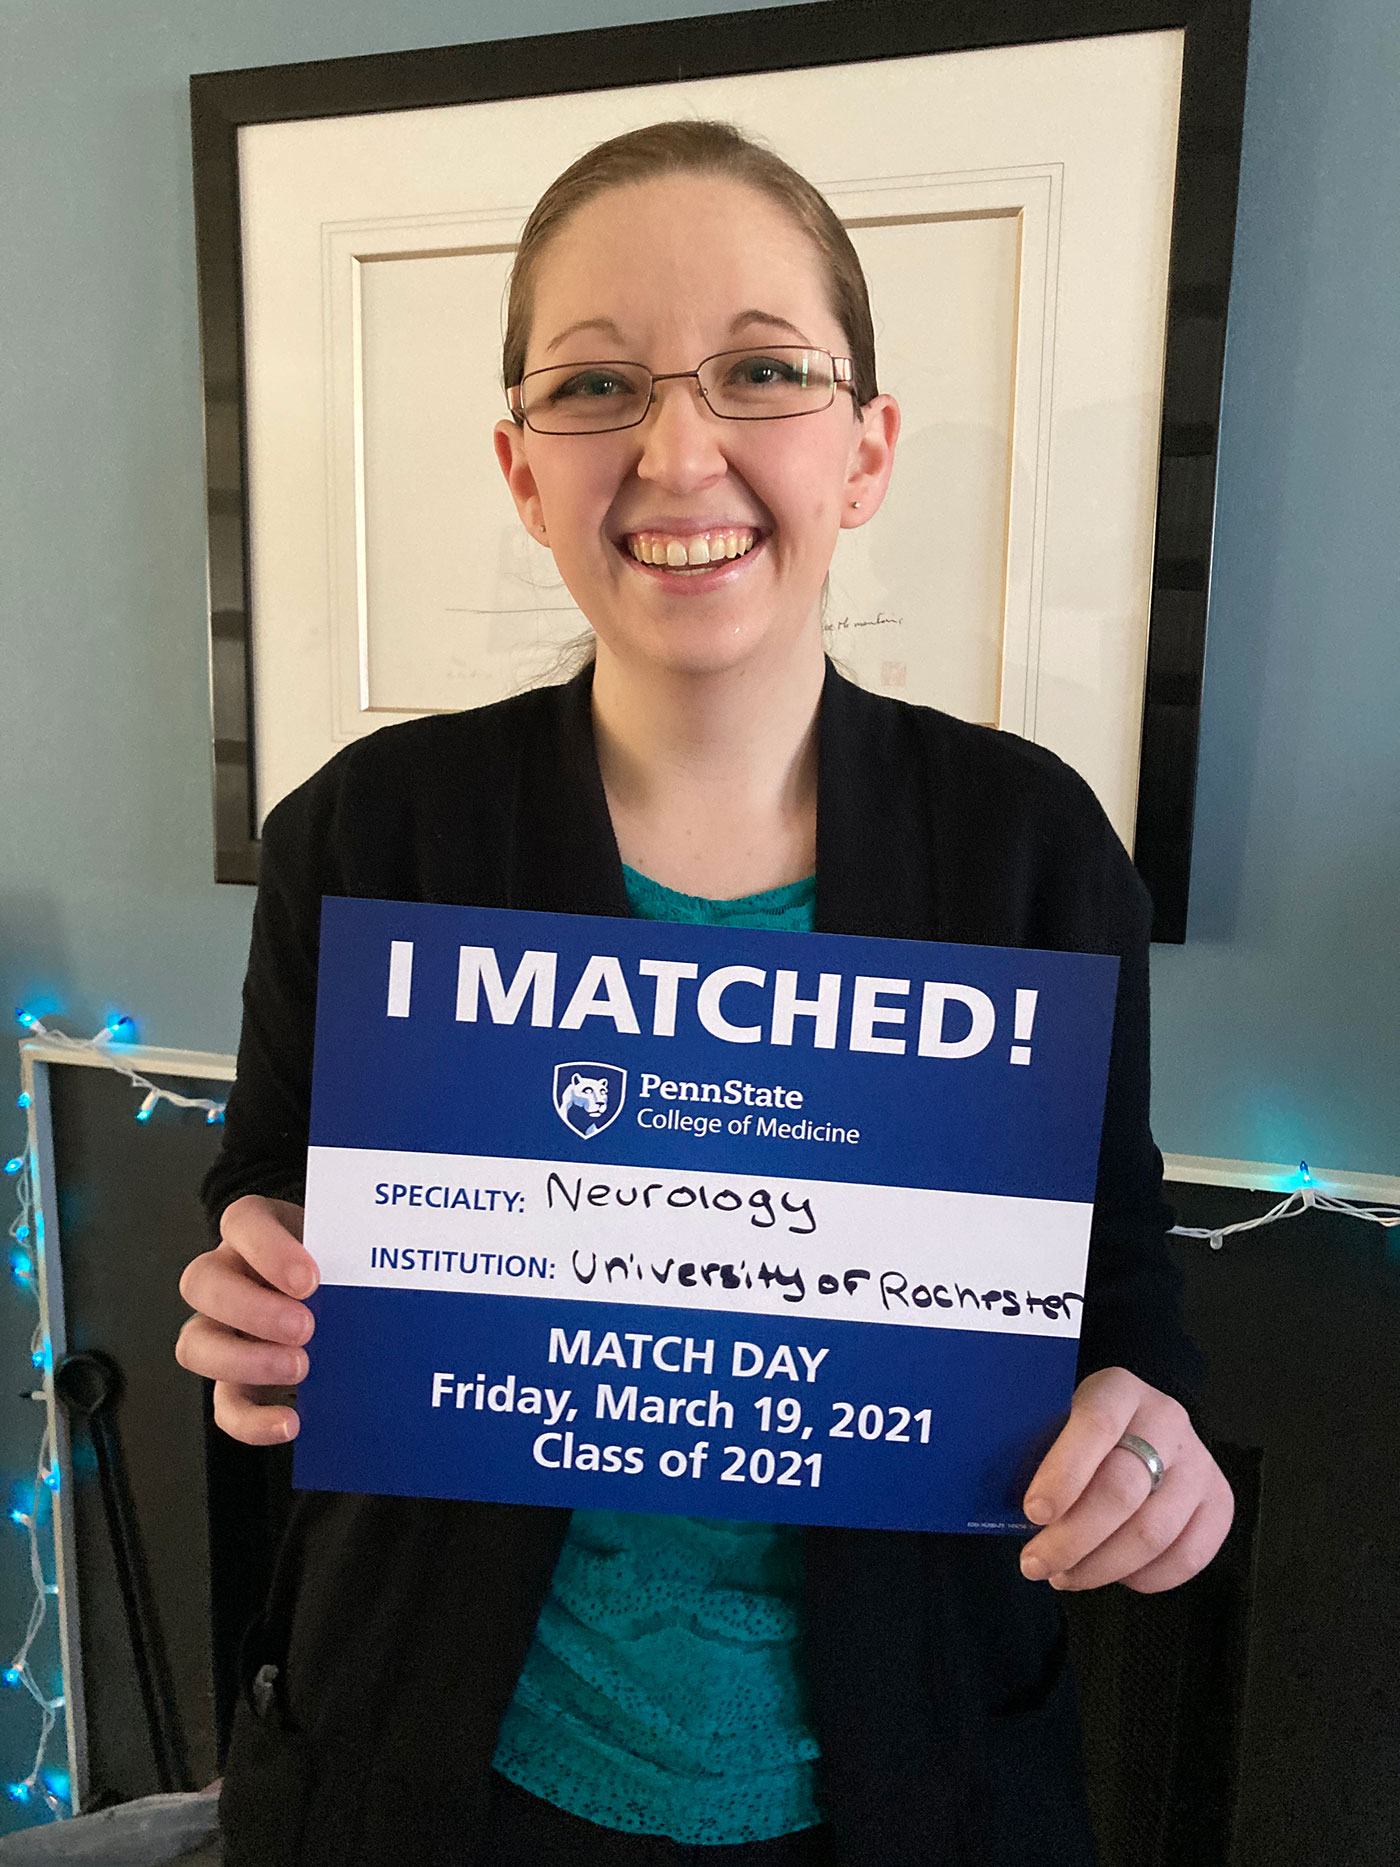 A woman holds an I Matched sign for Neurology at University of Rochester.